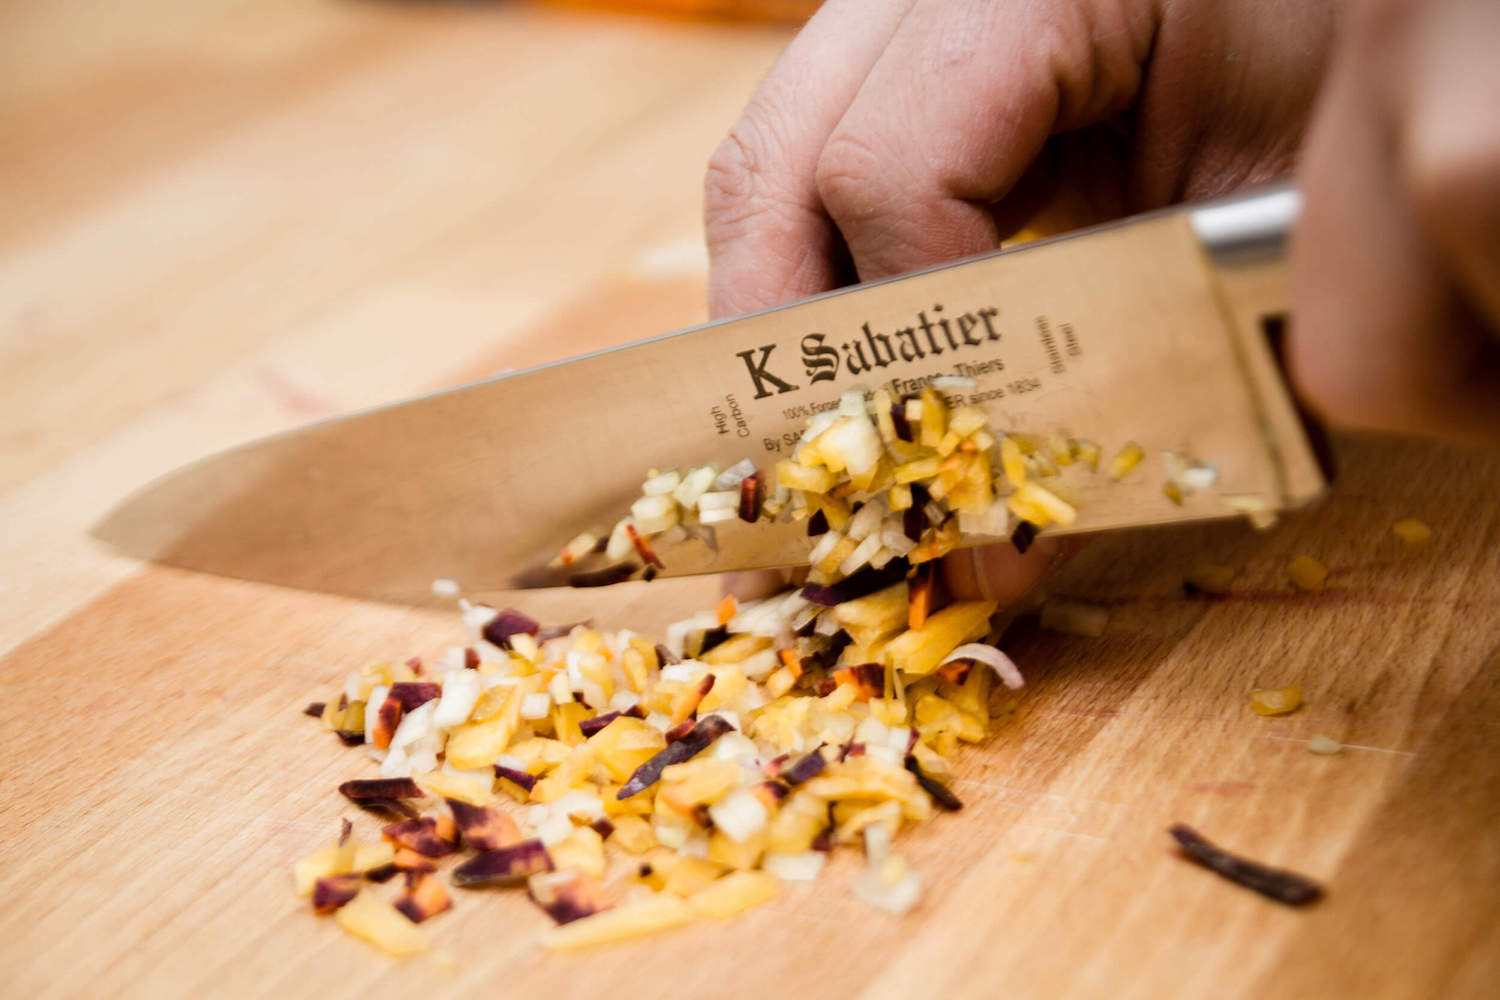 K sabatier kitchen knife